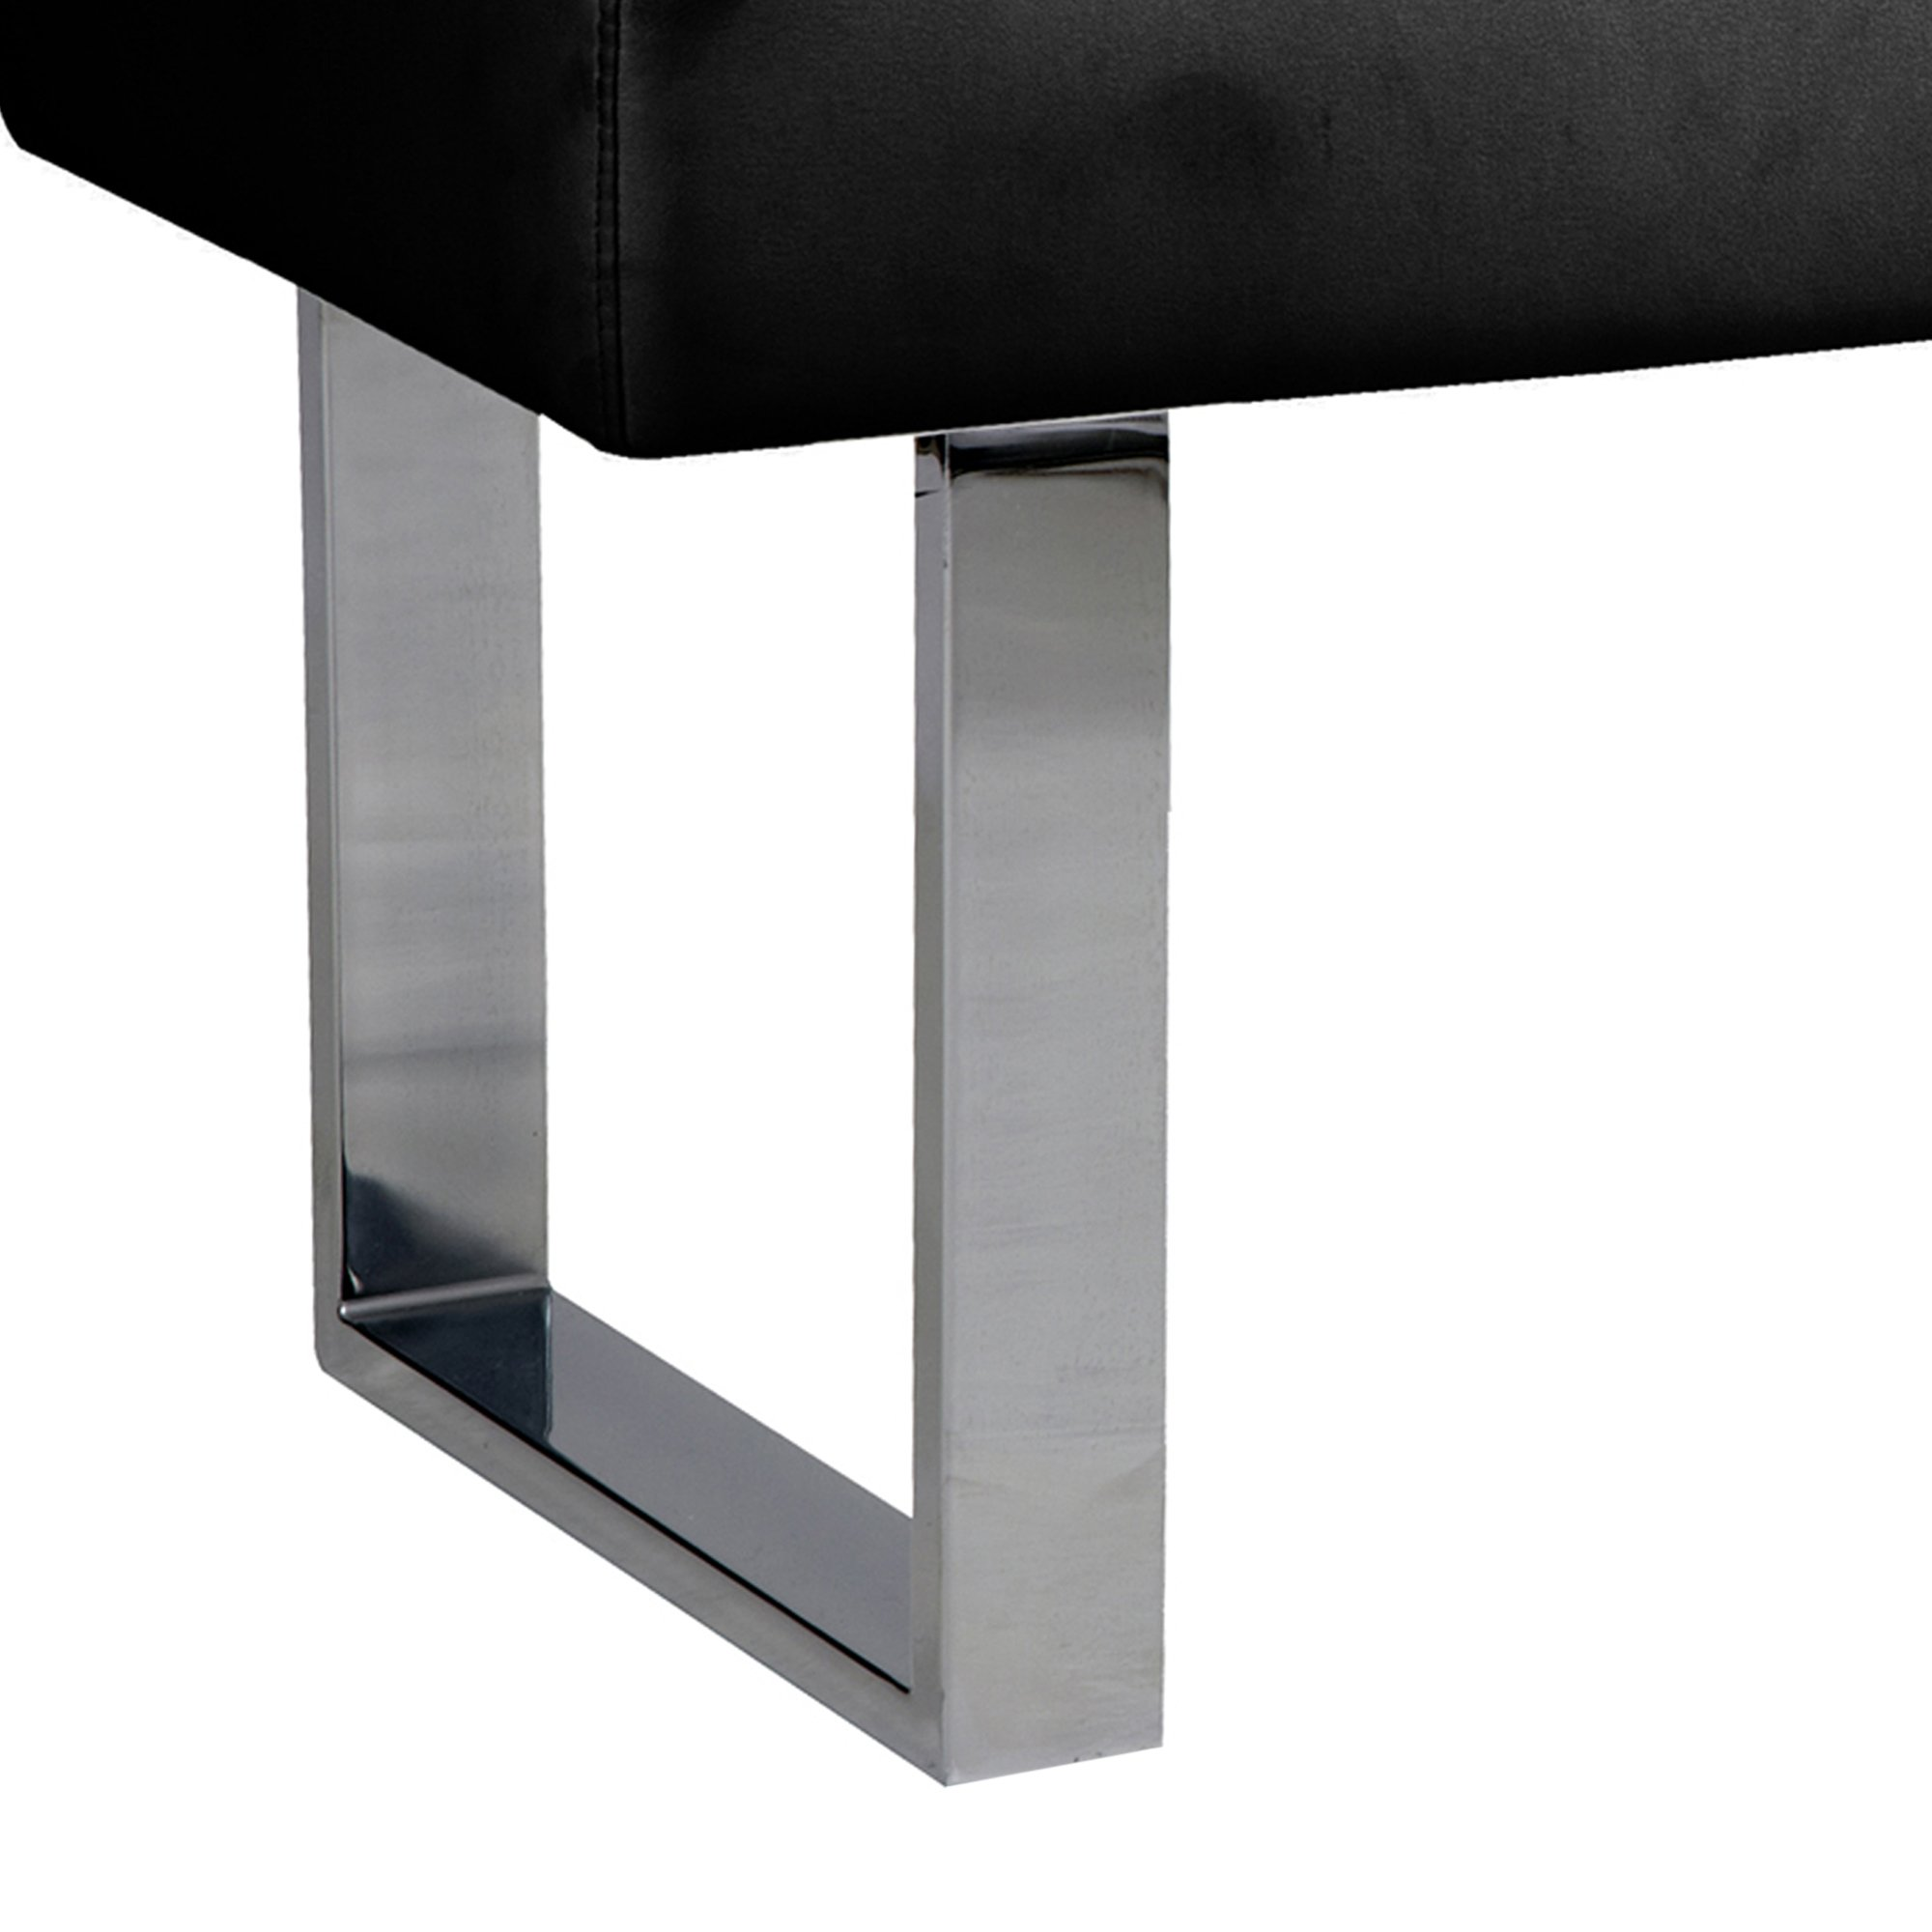 Armen Living LCAMBEBLBCH Amanda Bench in Black and Chrome Finish by Armen Living (Image #4)